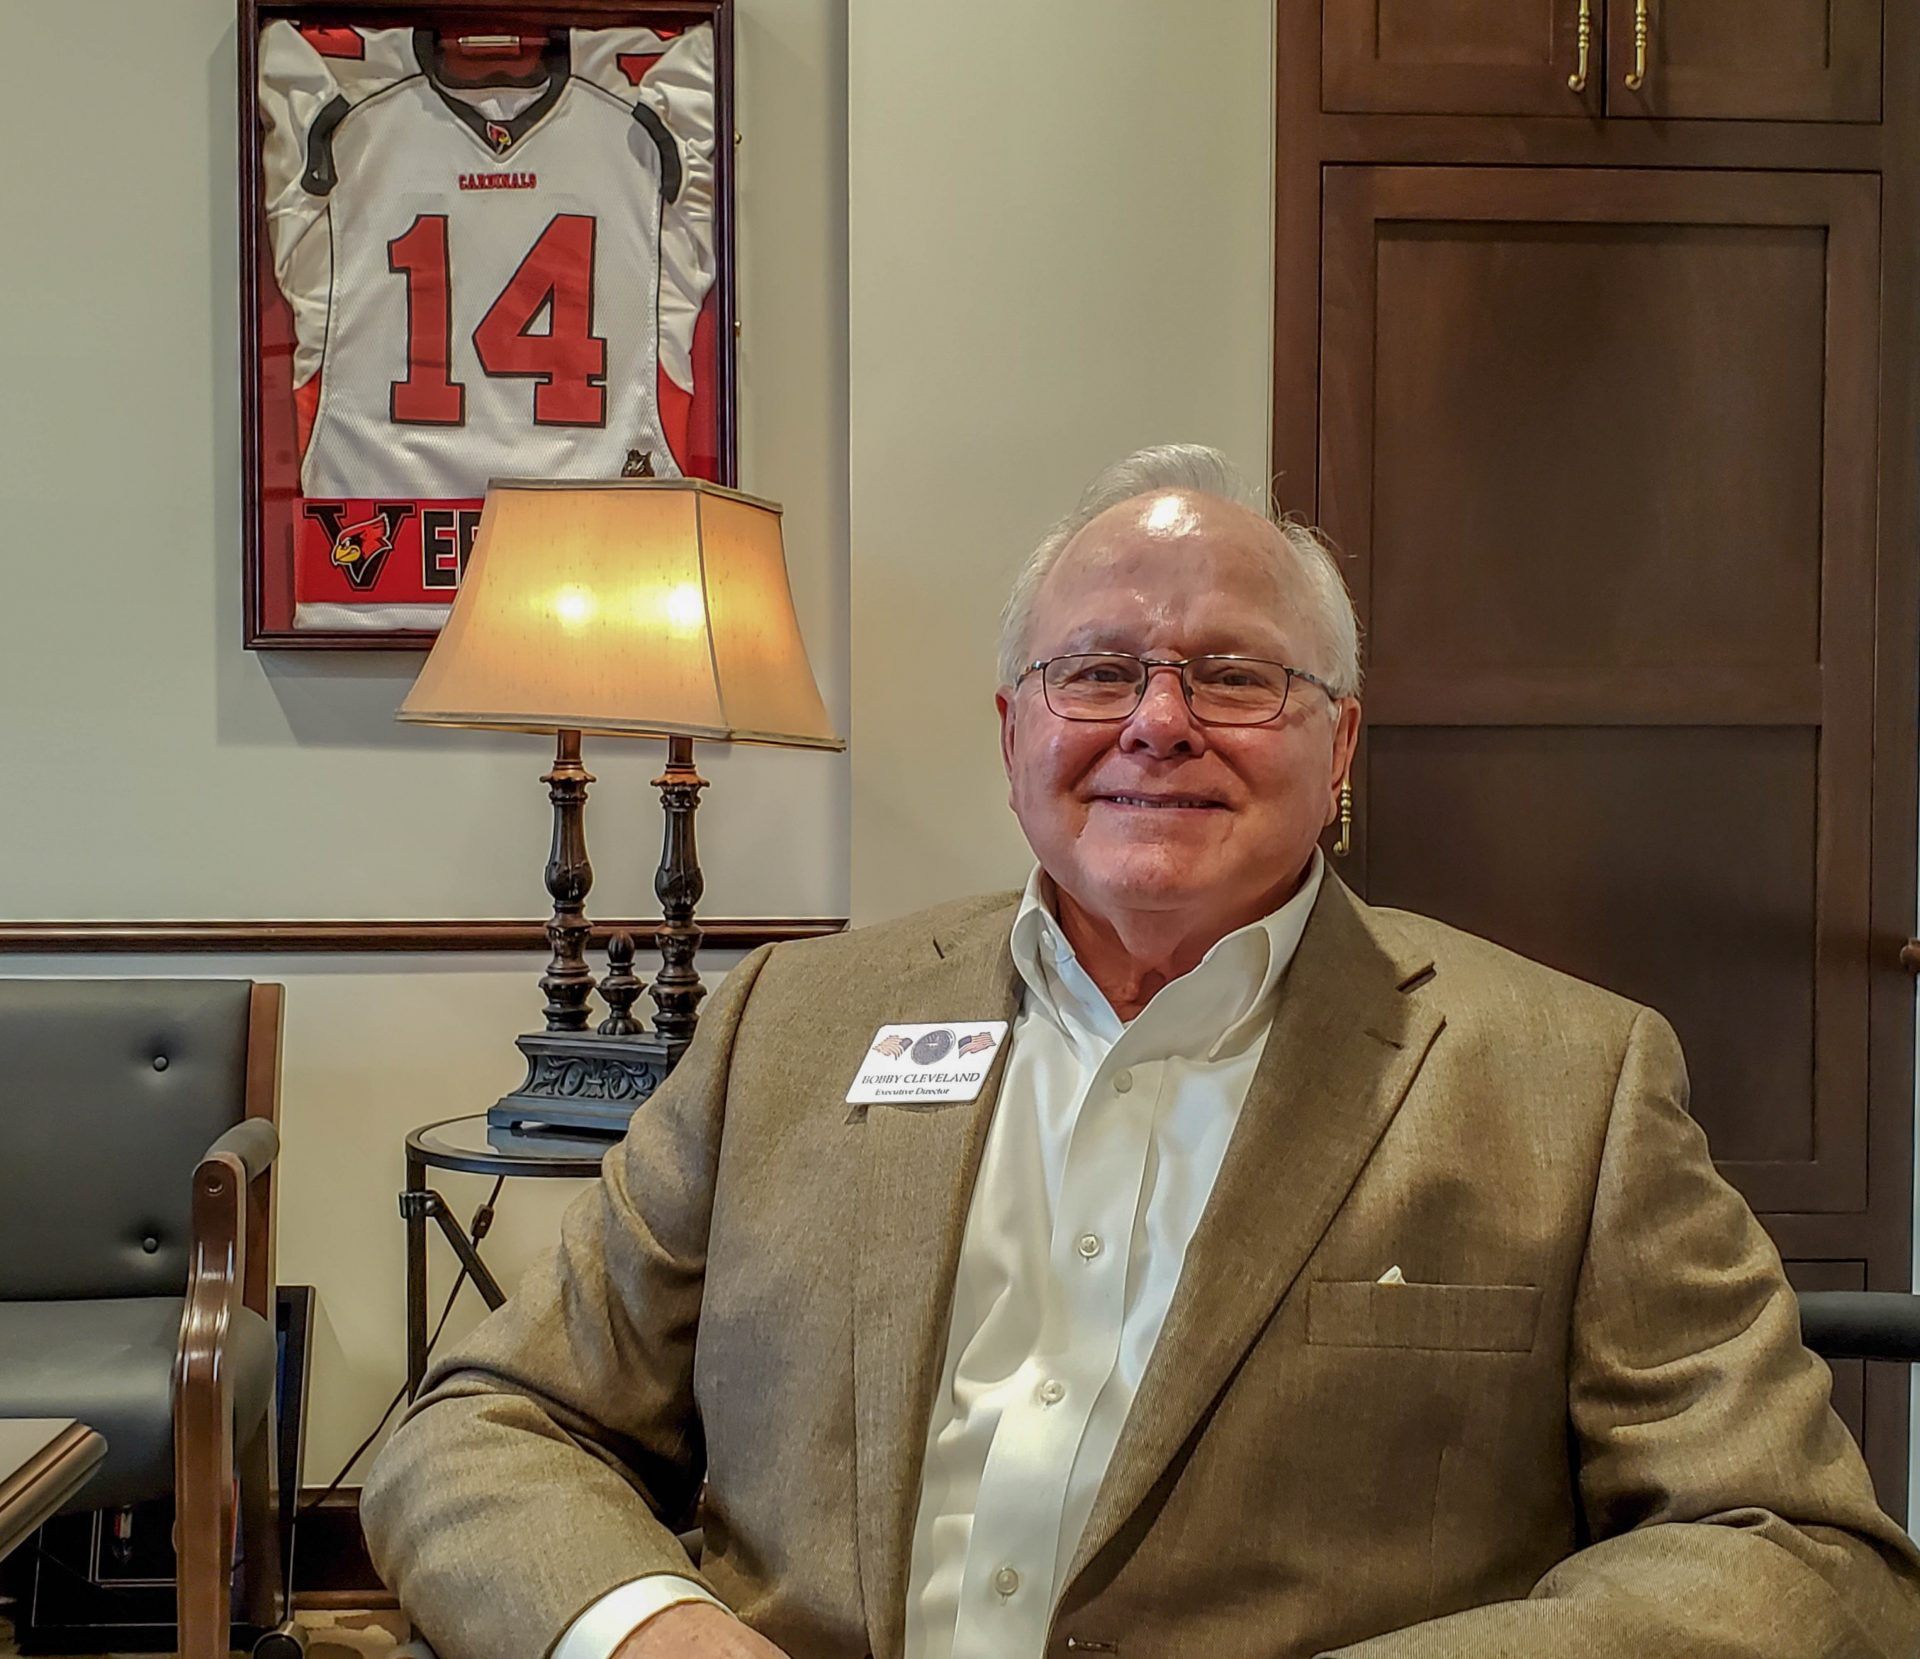 Bobby Cleveland sitting in an office at the state Capitol. A framed Arizona Cardinals jersey hangs behind him.